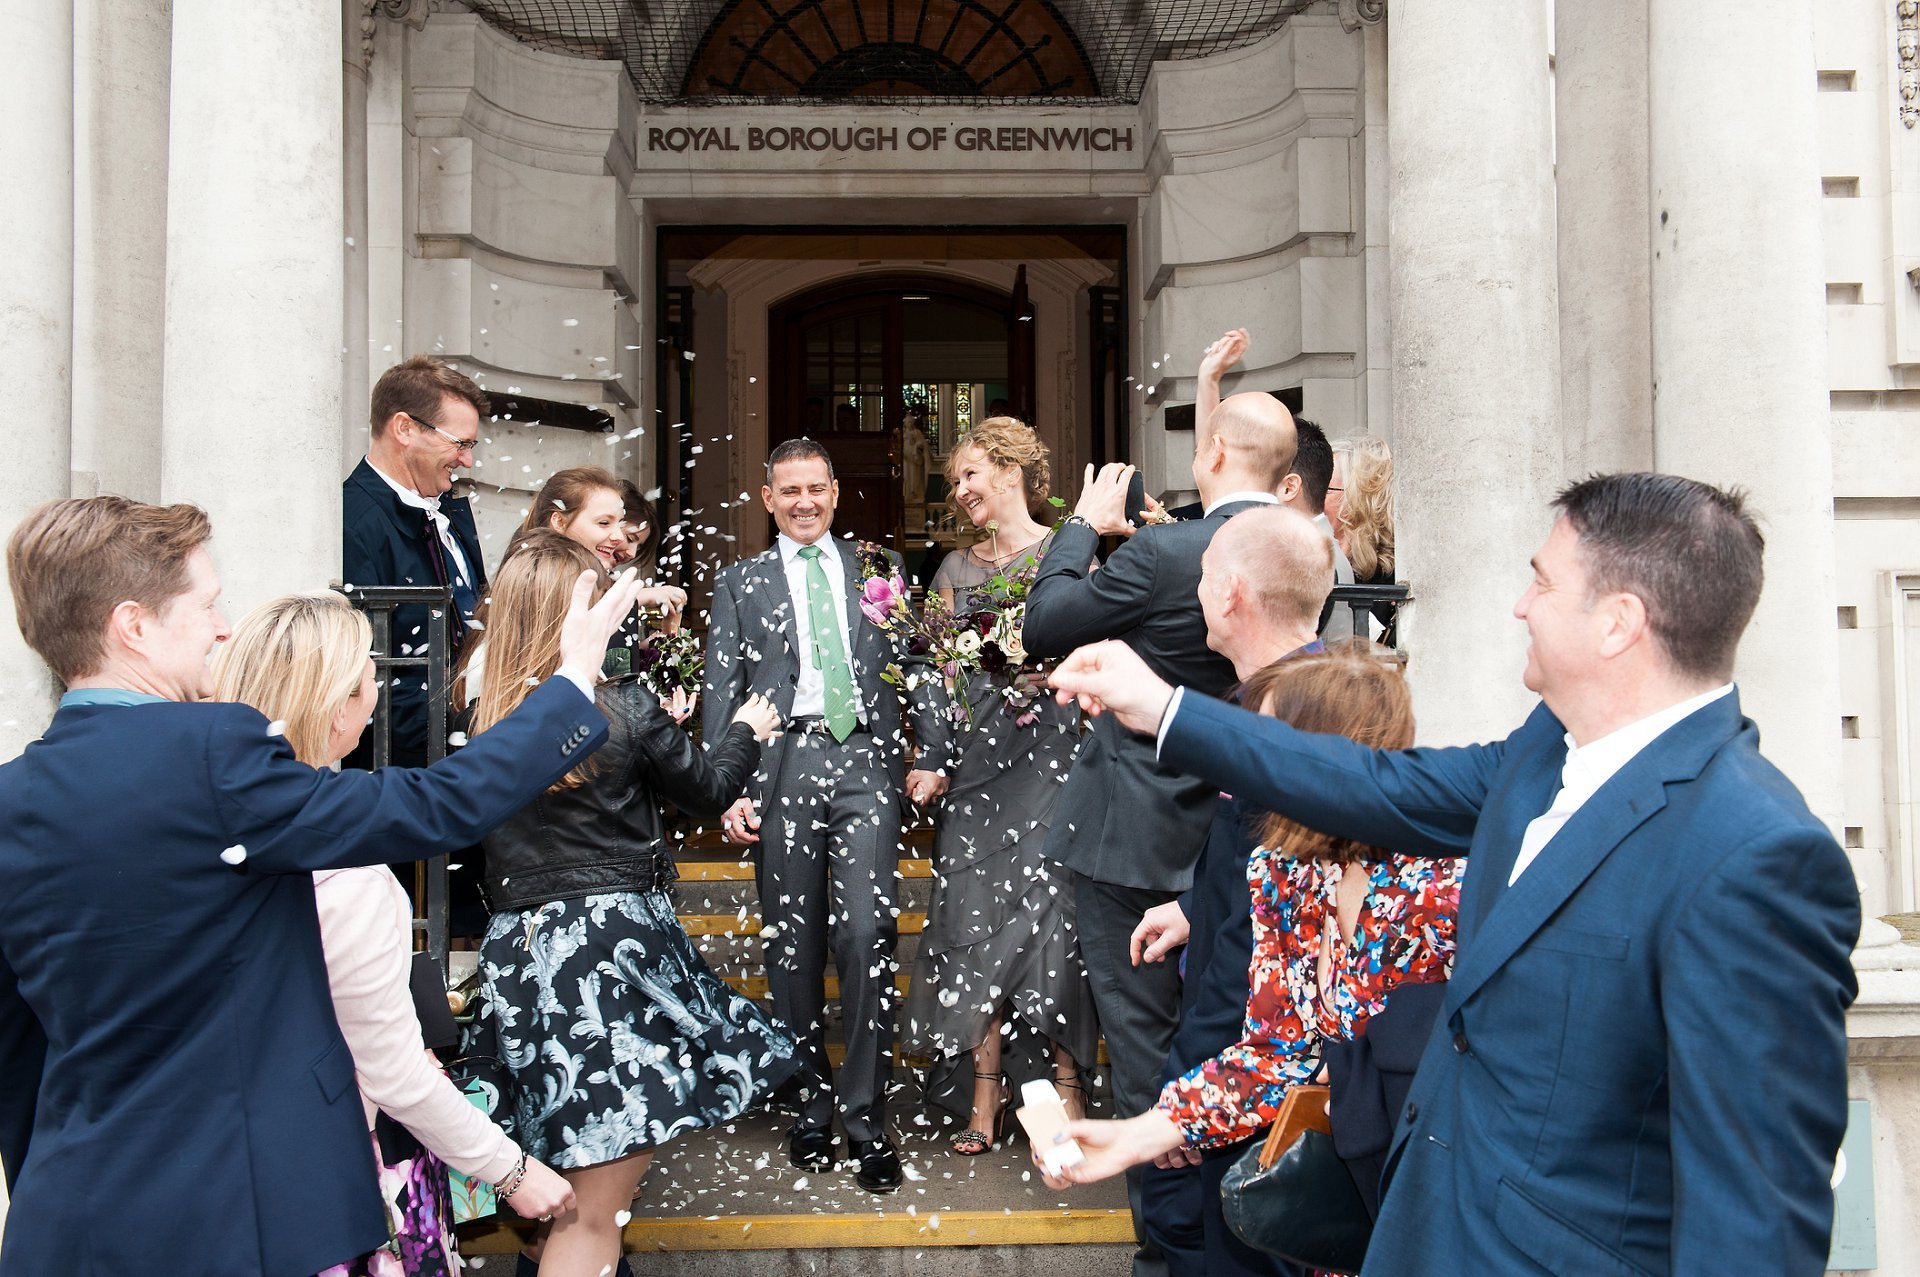 Bride & Groom leaving Woolwich Town Hall (Wellington Entrance) with guests throwing confetti to celebrate their marriage